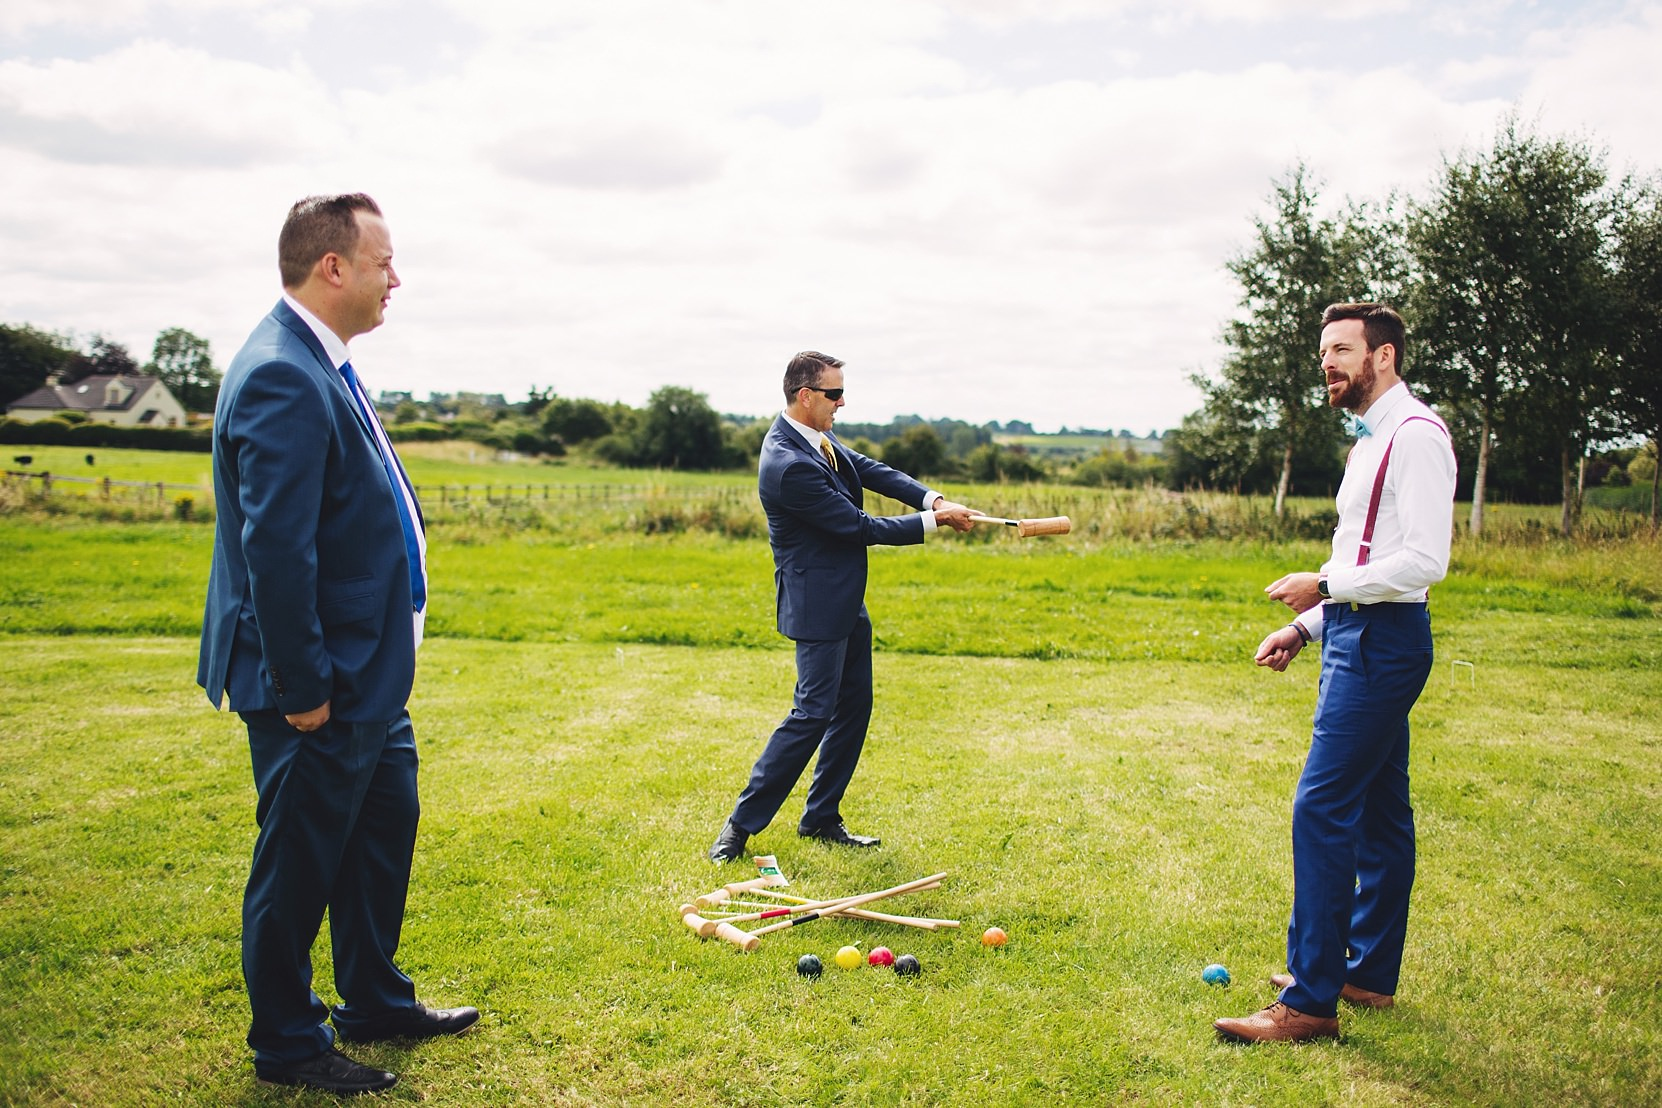 Groom playing games at his wedding